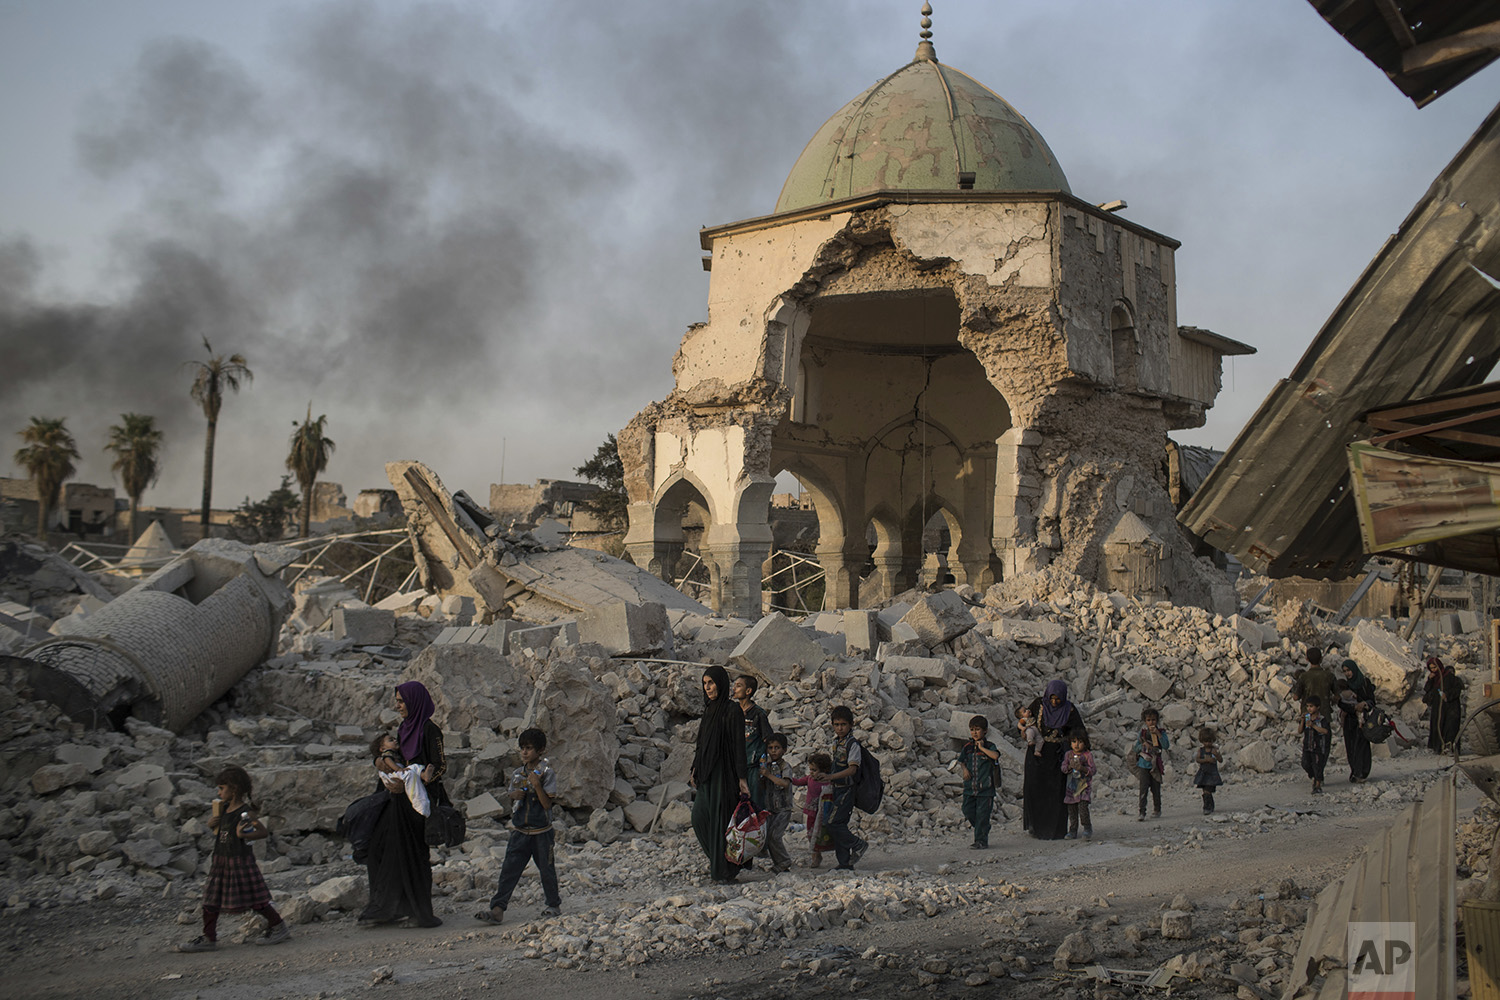 Fleeing Iraqi civilians walk past the heavily damaged al-Nuri mosque as Iraqi forces continue their advance against Islamic State militants in the Old City of Mosul, Iraq, Tuesday, July 4, 2017. (AP Photo/Felipe Dana)